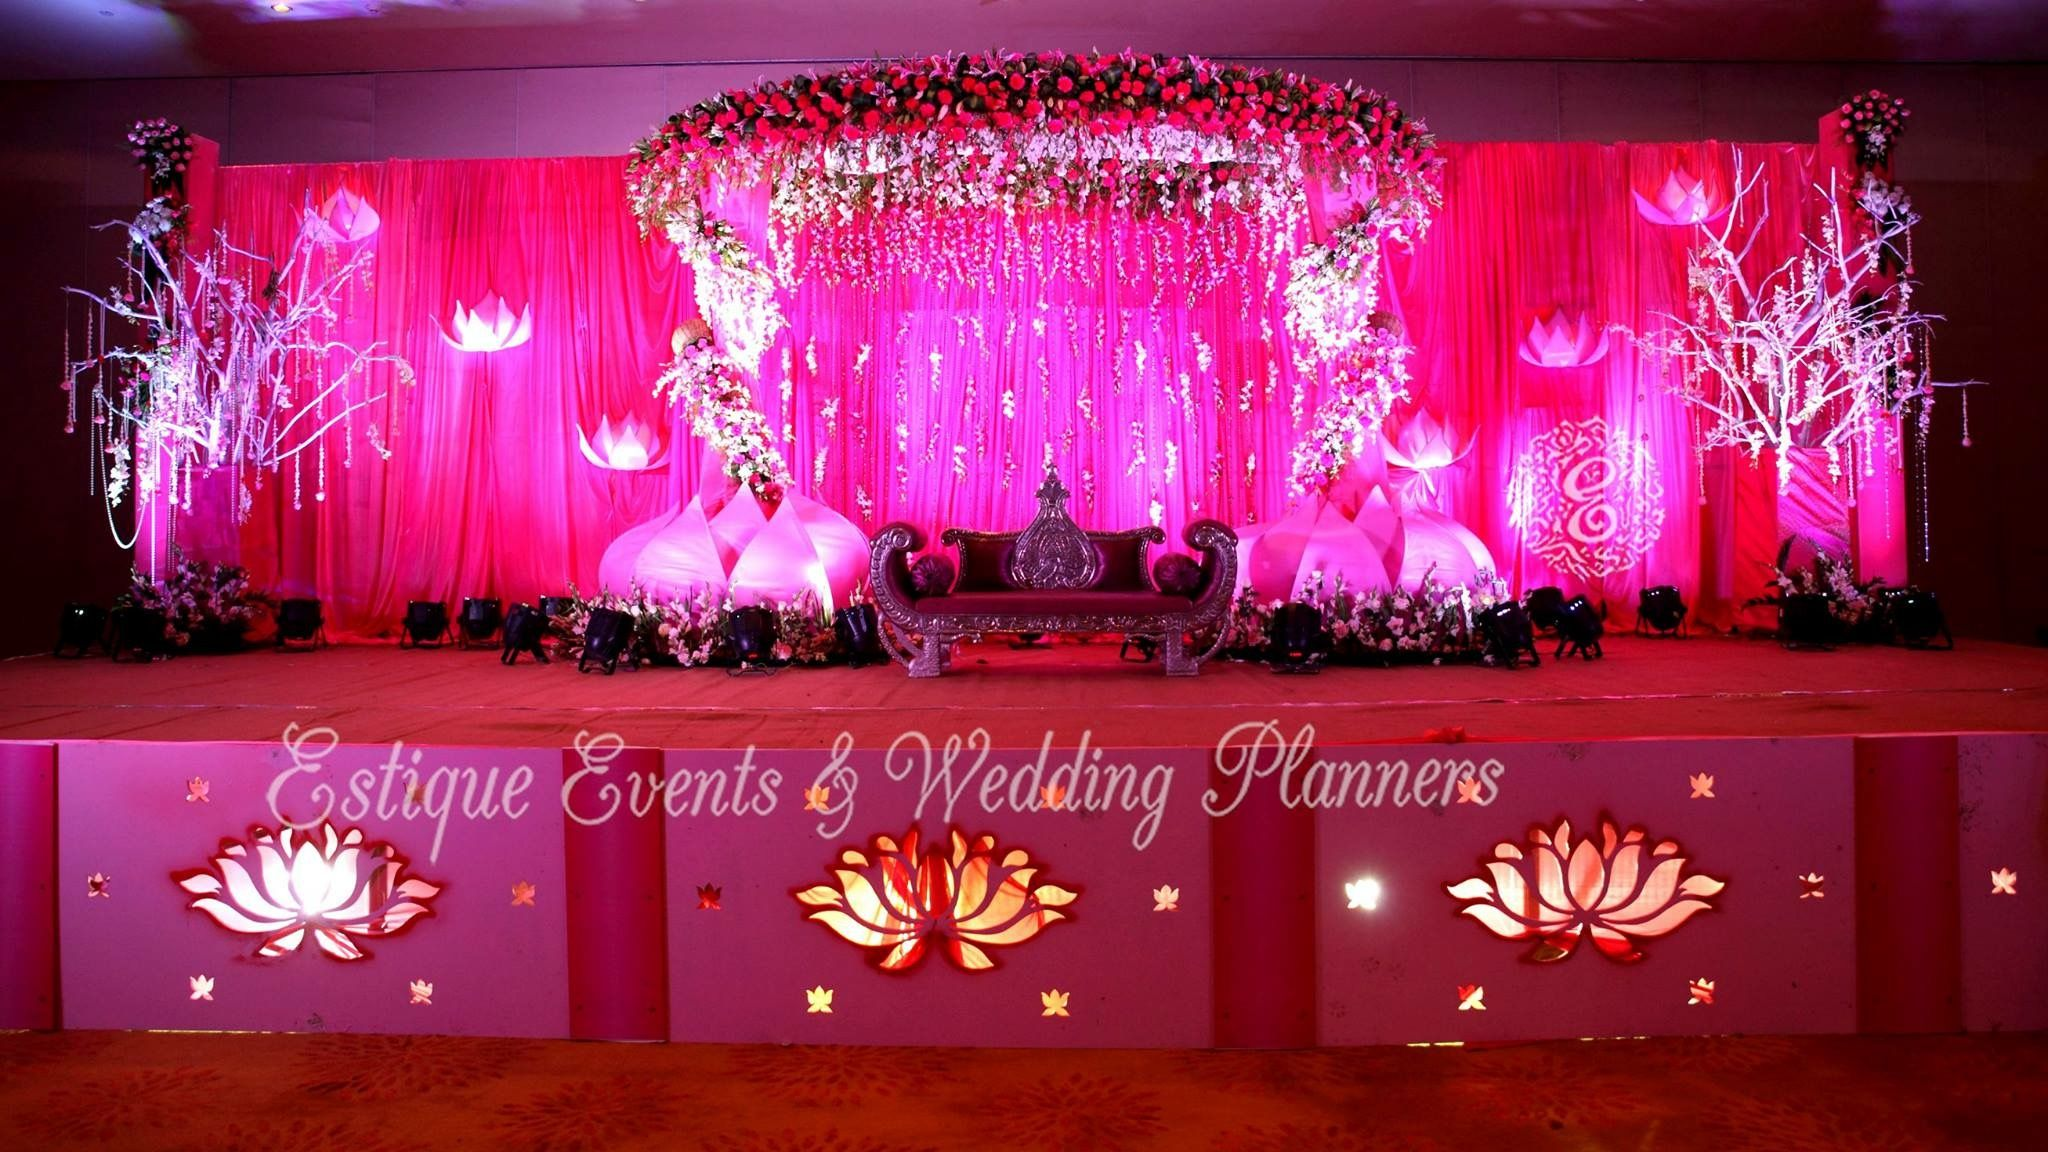 Pin by Spandana Reddy Sappidi on Wedding and party ideas | Pinterest ...